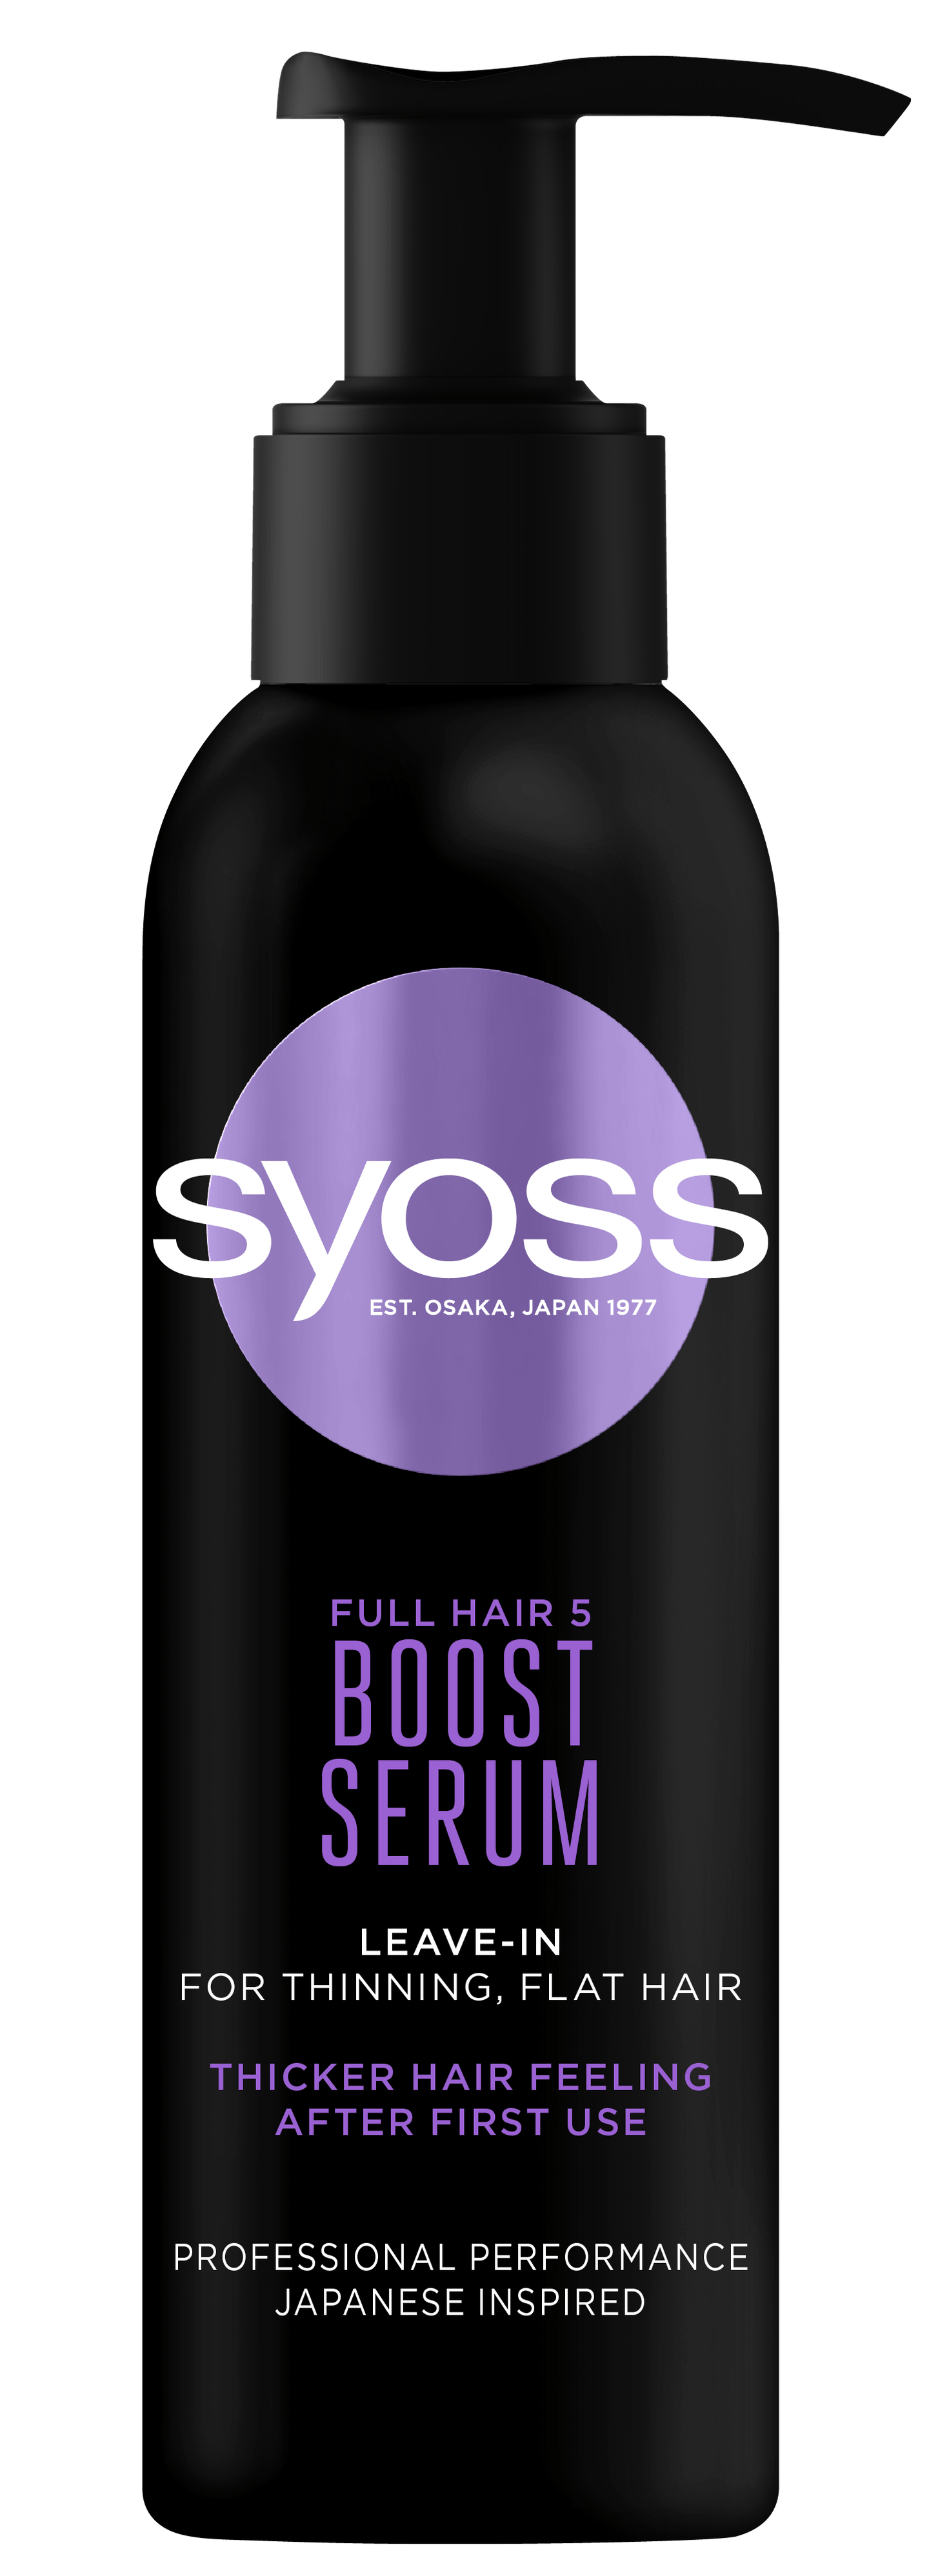 Full Hair 5 Boost sérum